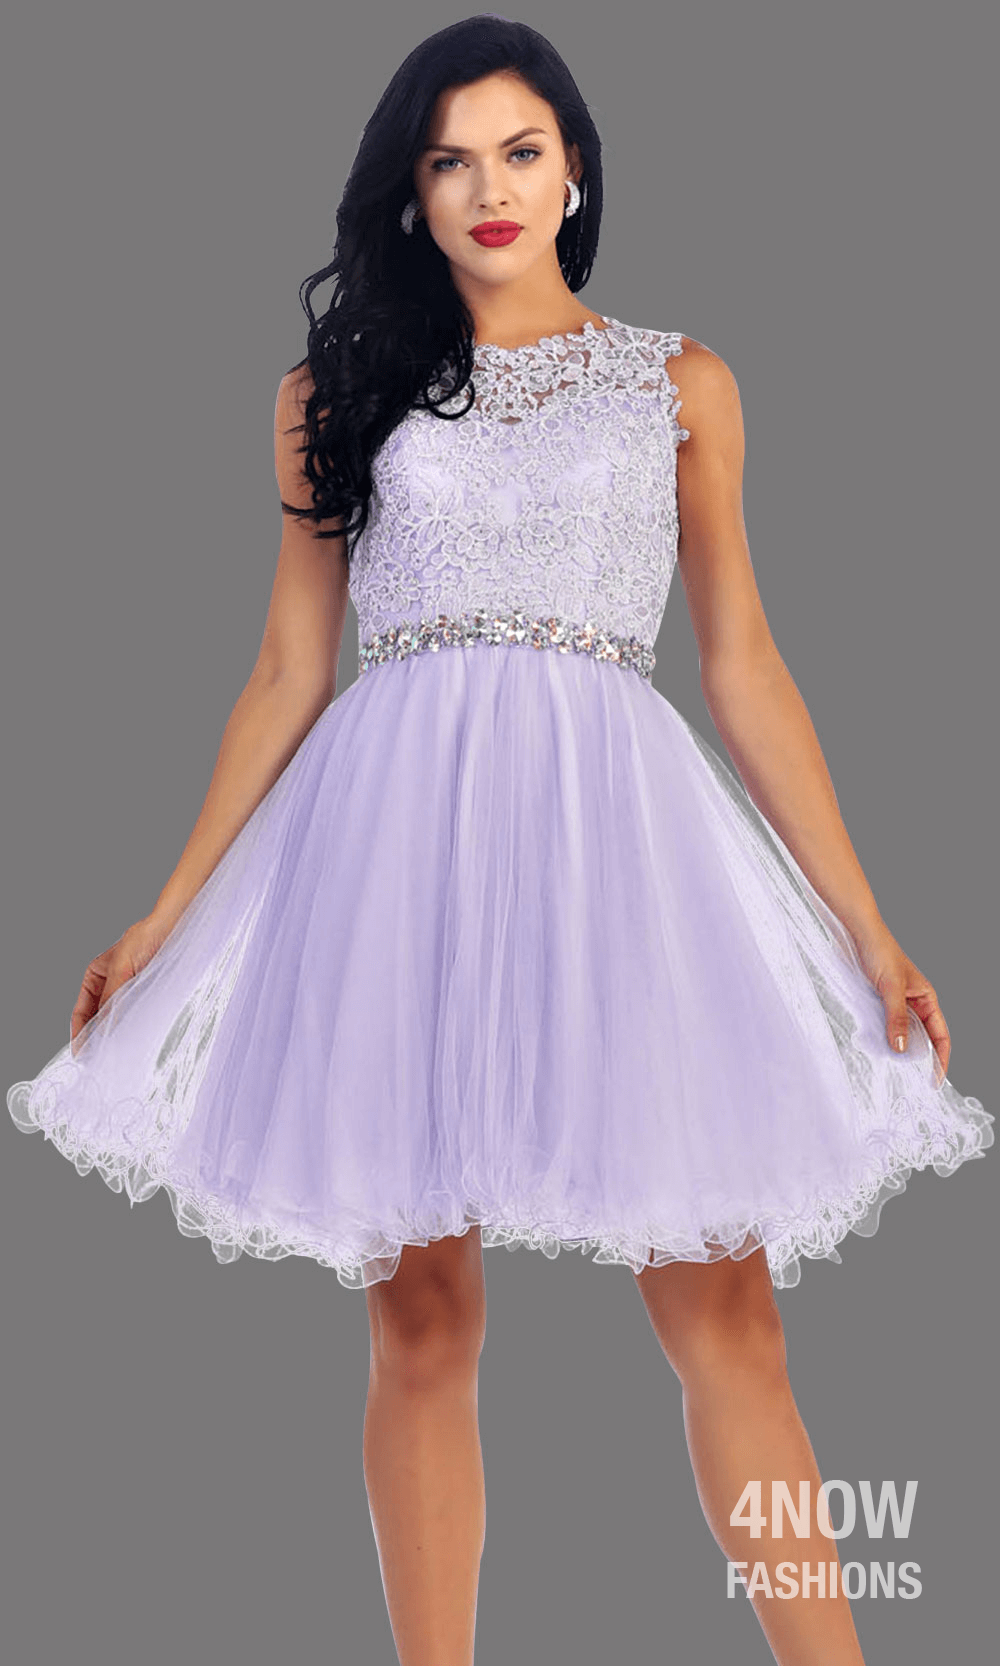 Puffy Tulle Dress - SAMANTHA